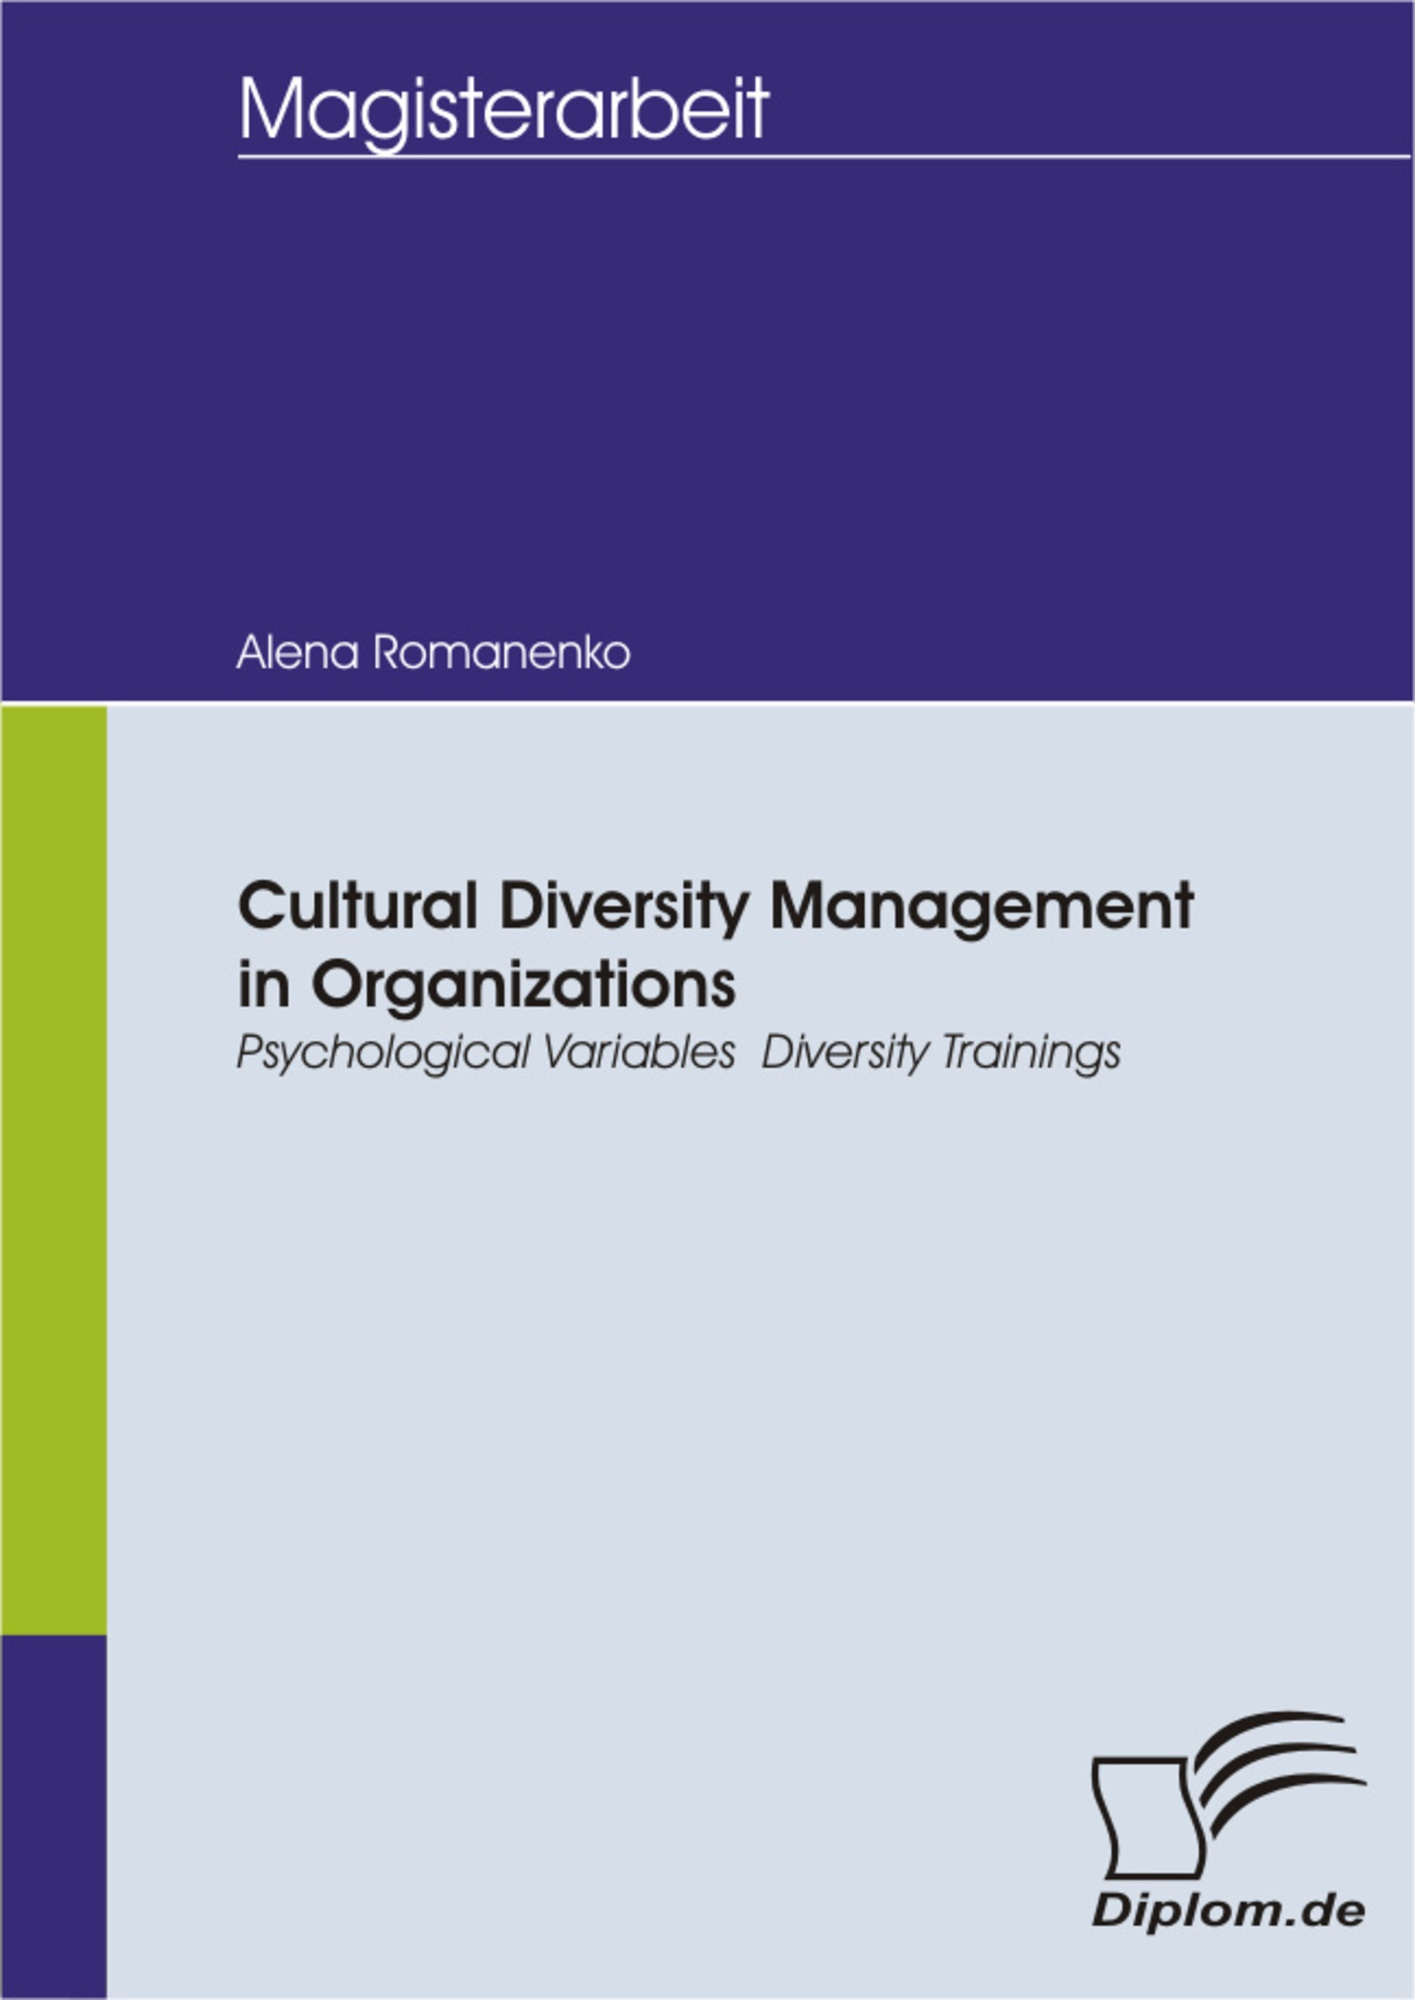 Cultural Diversity Management in Organizations